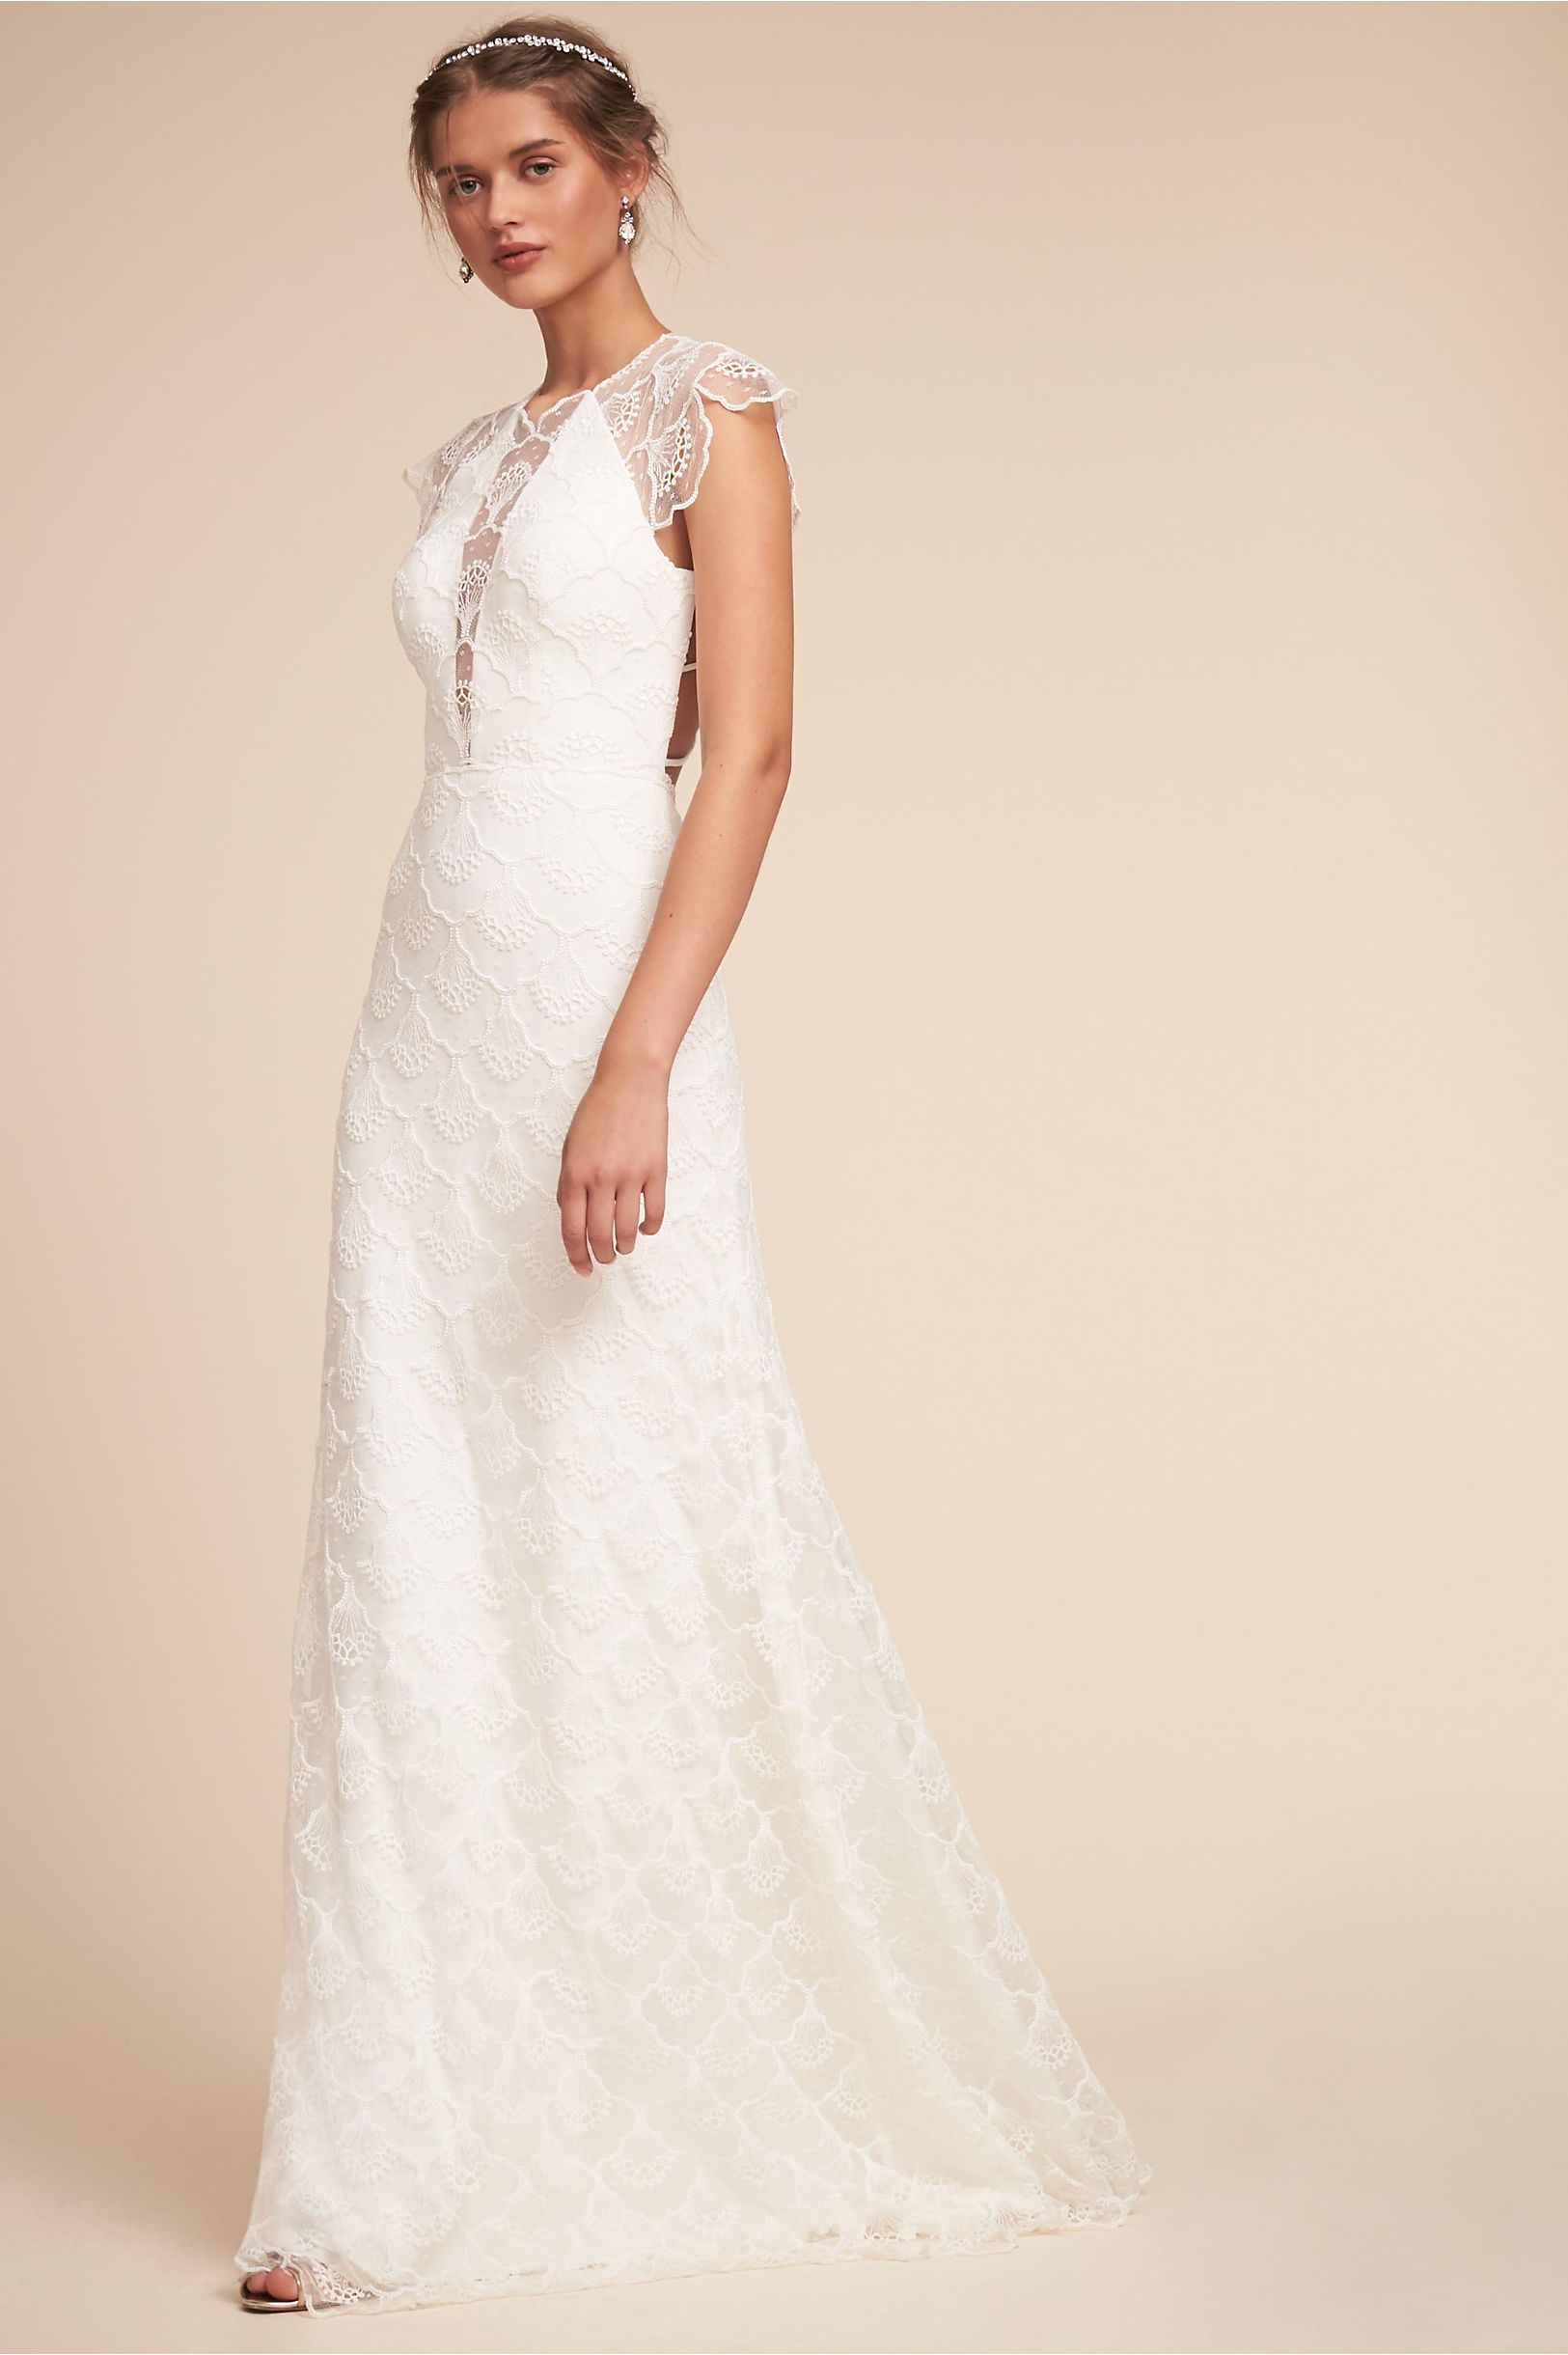 Bhldnus cara gown in ivory products pinterest wedding dresses